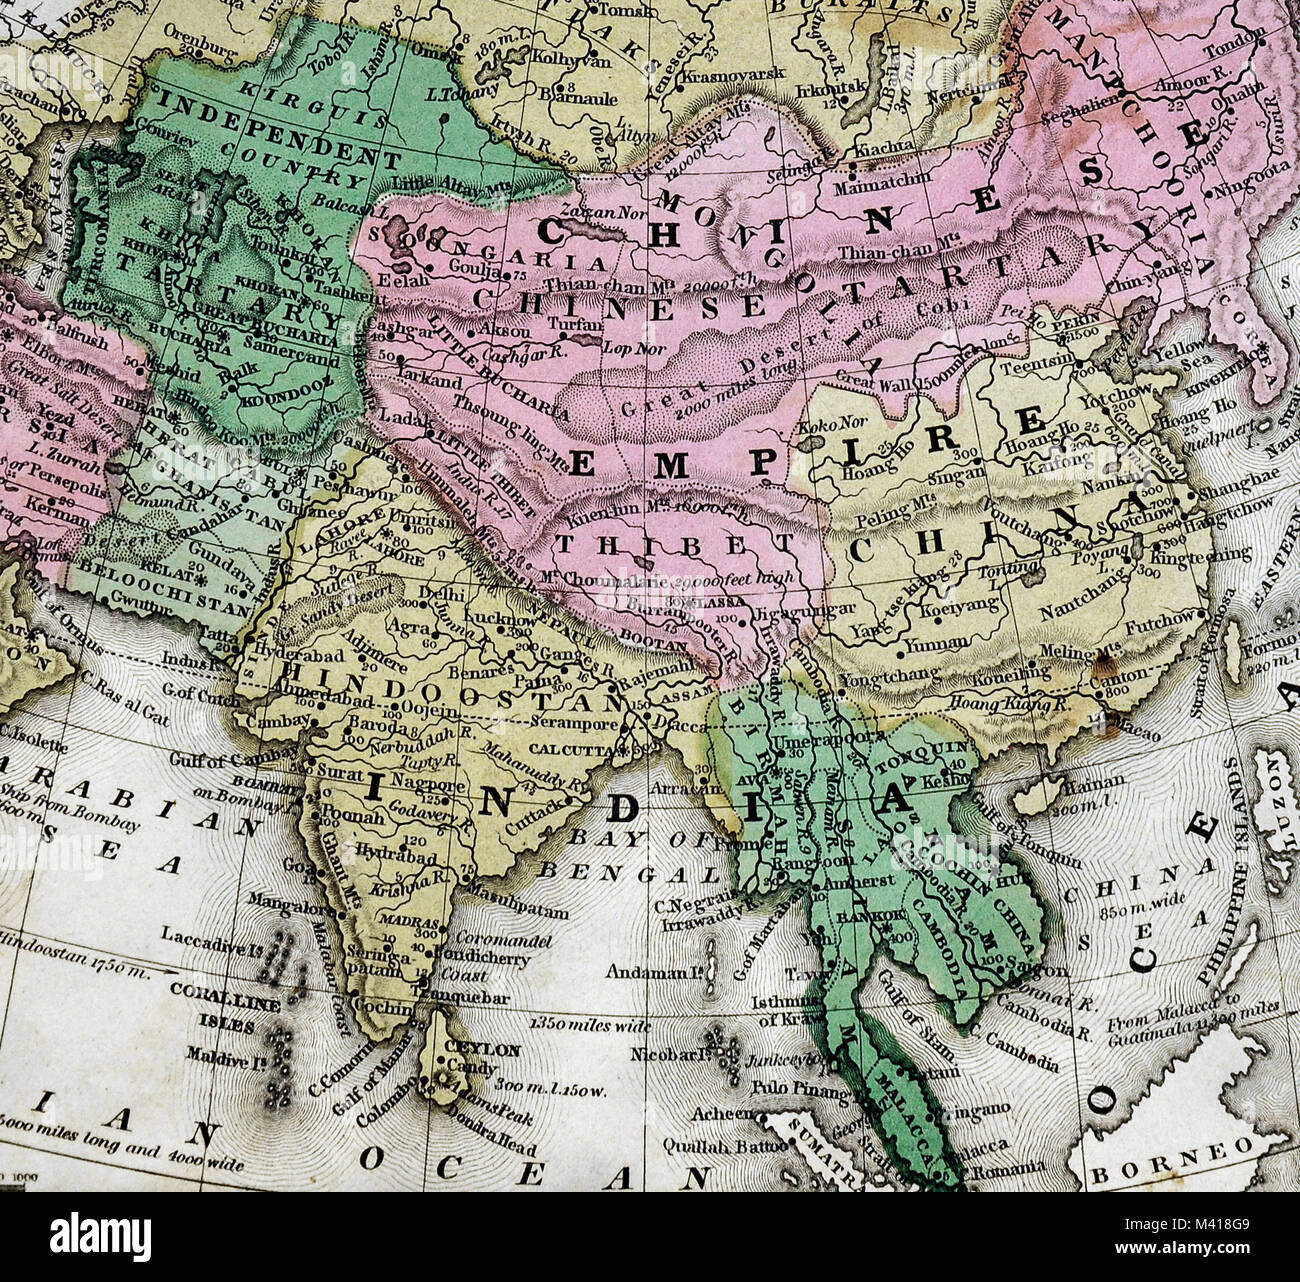 Map Of Asia Japan And China.1839 Mitchell Map Asia China Japan Korea India Russia Siberia